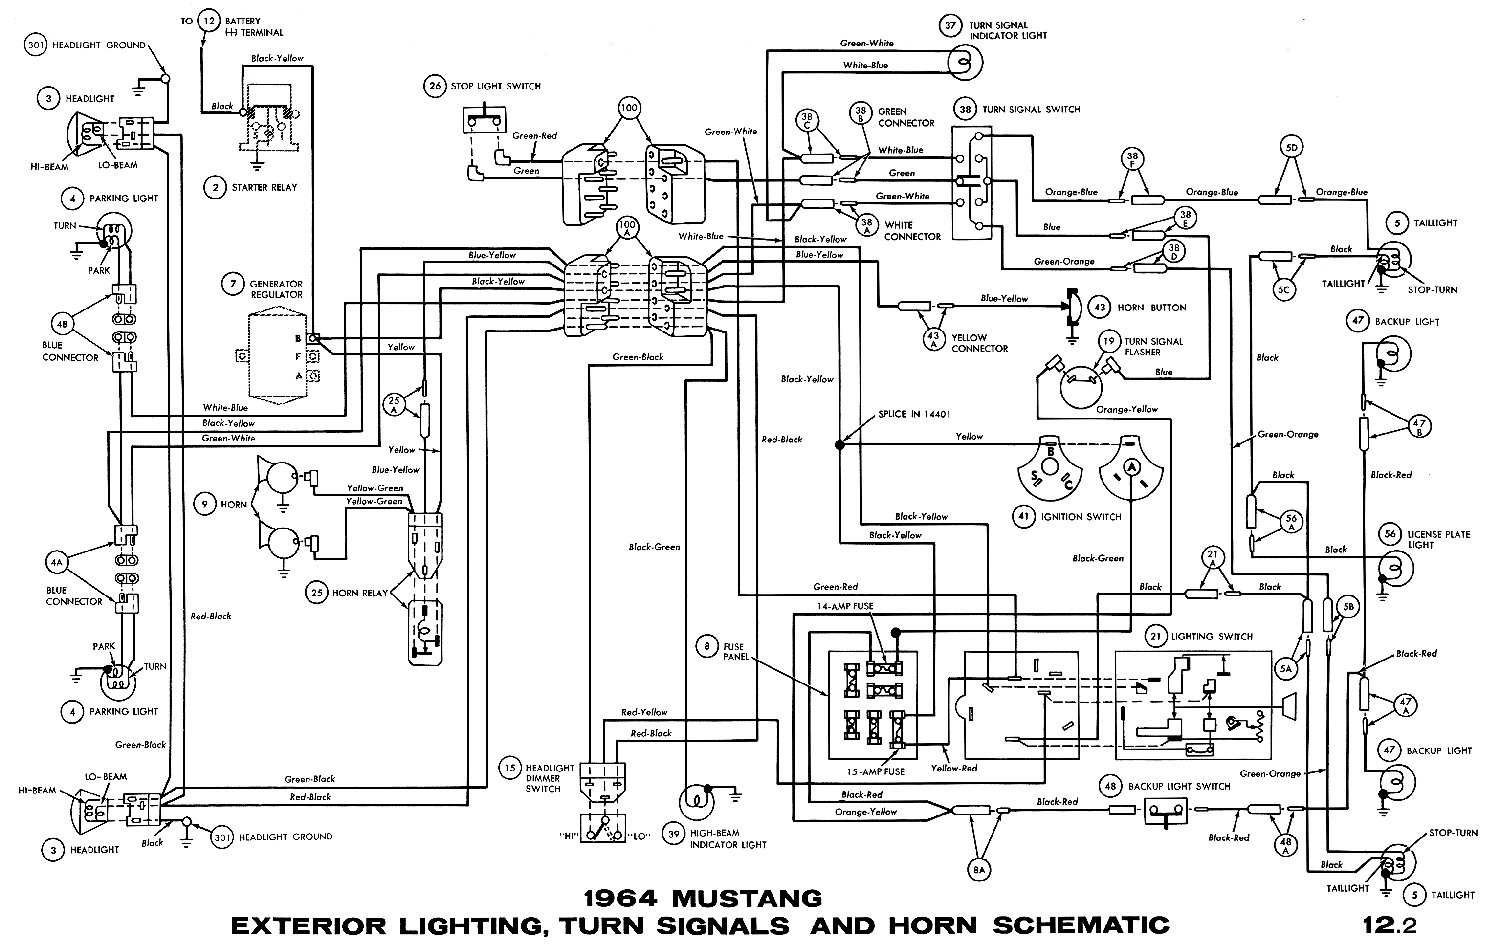 hight resolution of 1964 mustang wiring diagrams average joe restoration rh averagejoerestoration com 64 impala headlight switch wiring plug c3 corvette headlight wiring